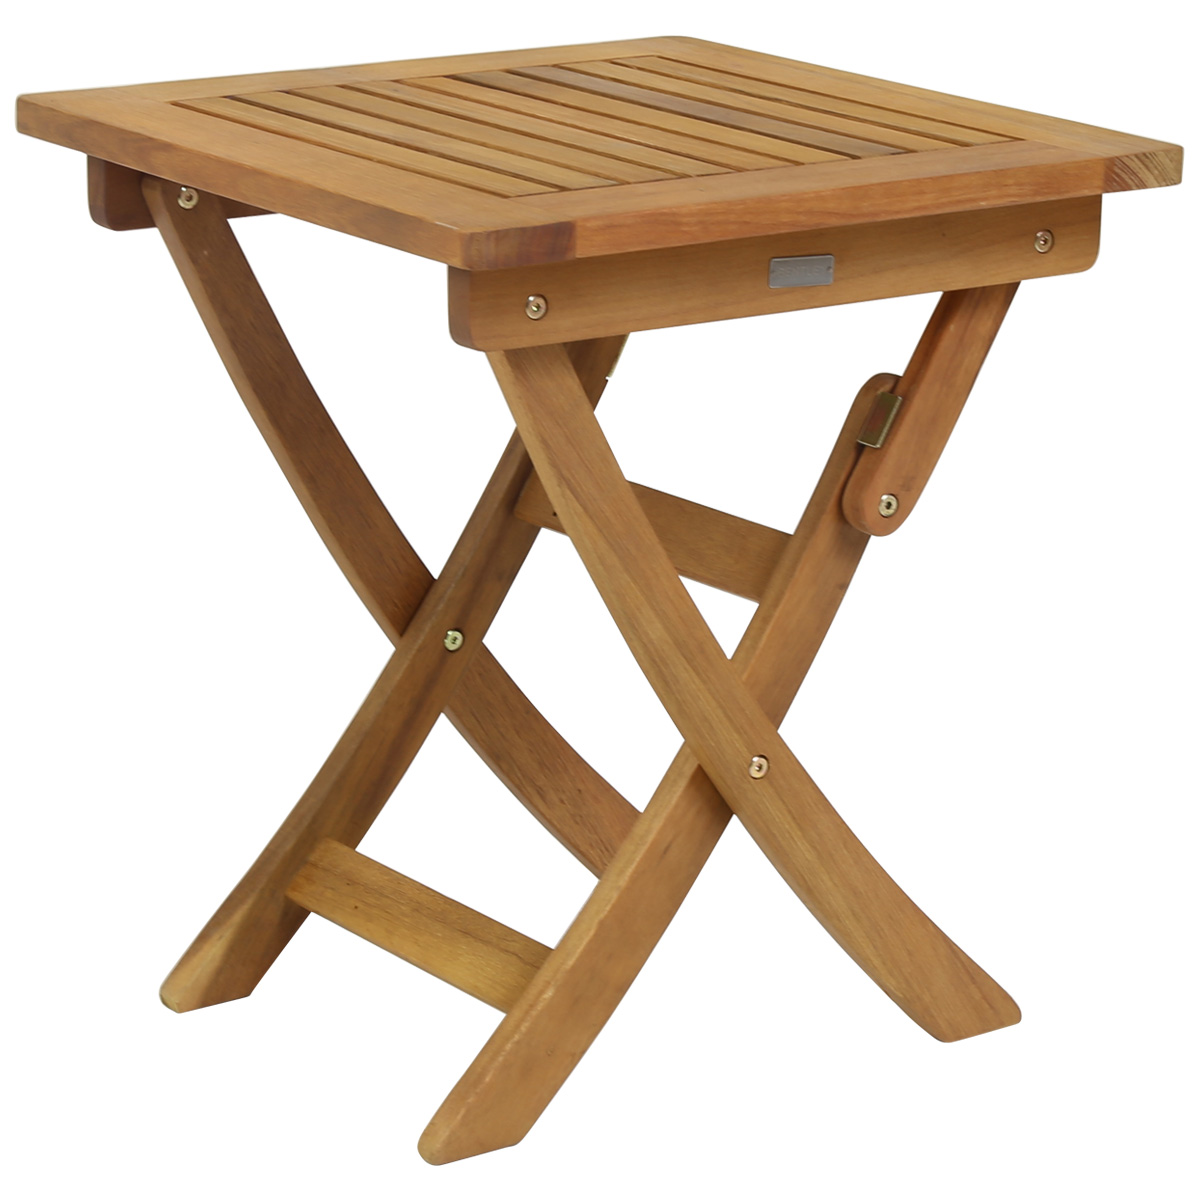 small foldable wooden garden side table charles bentley outdoor wood piece setting bunnings dining room furniture mat for ethan allen nesting tables big umbrella coloured glass